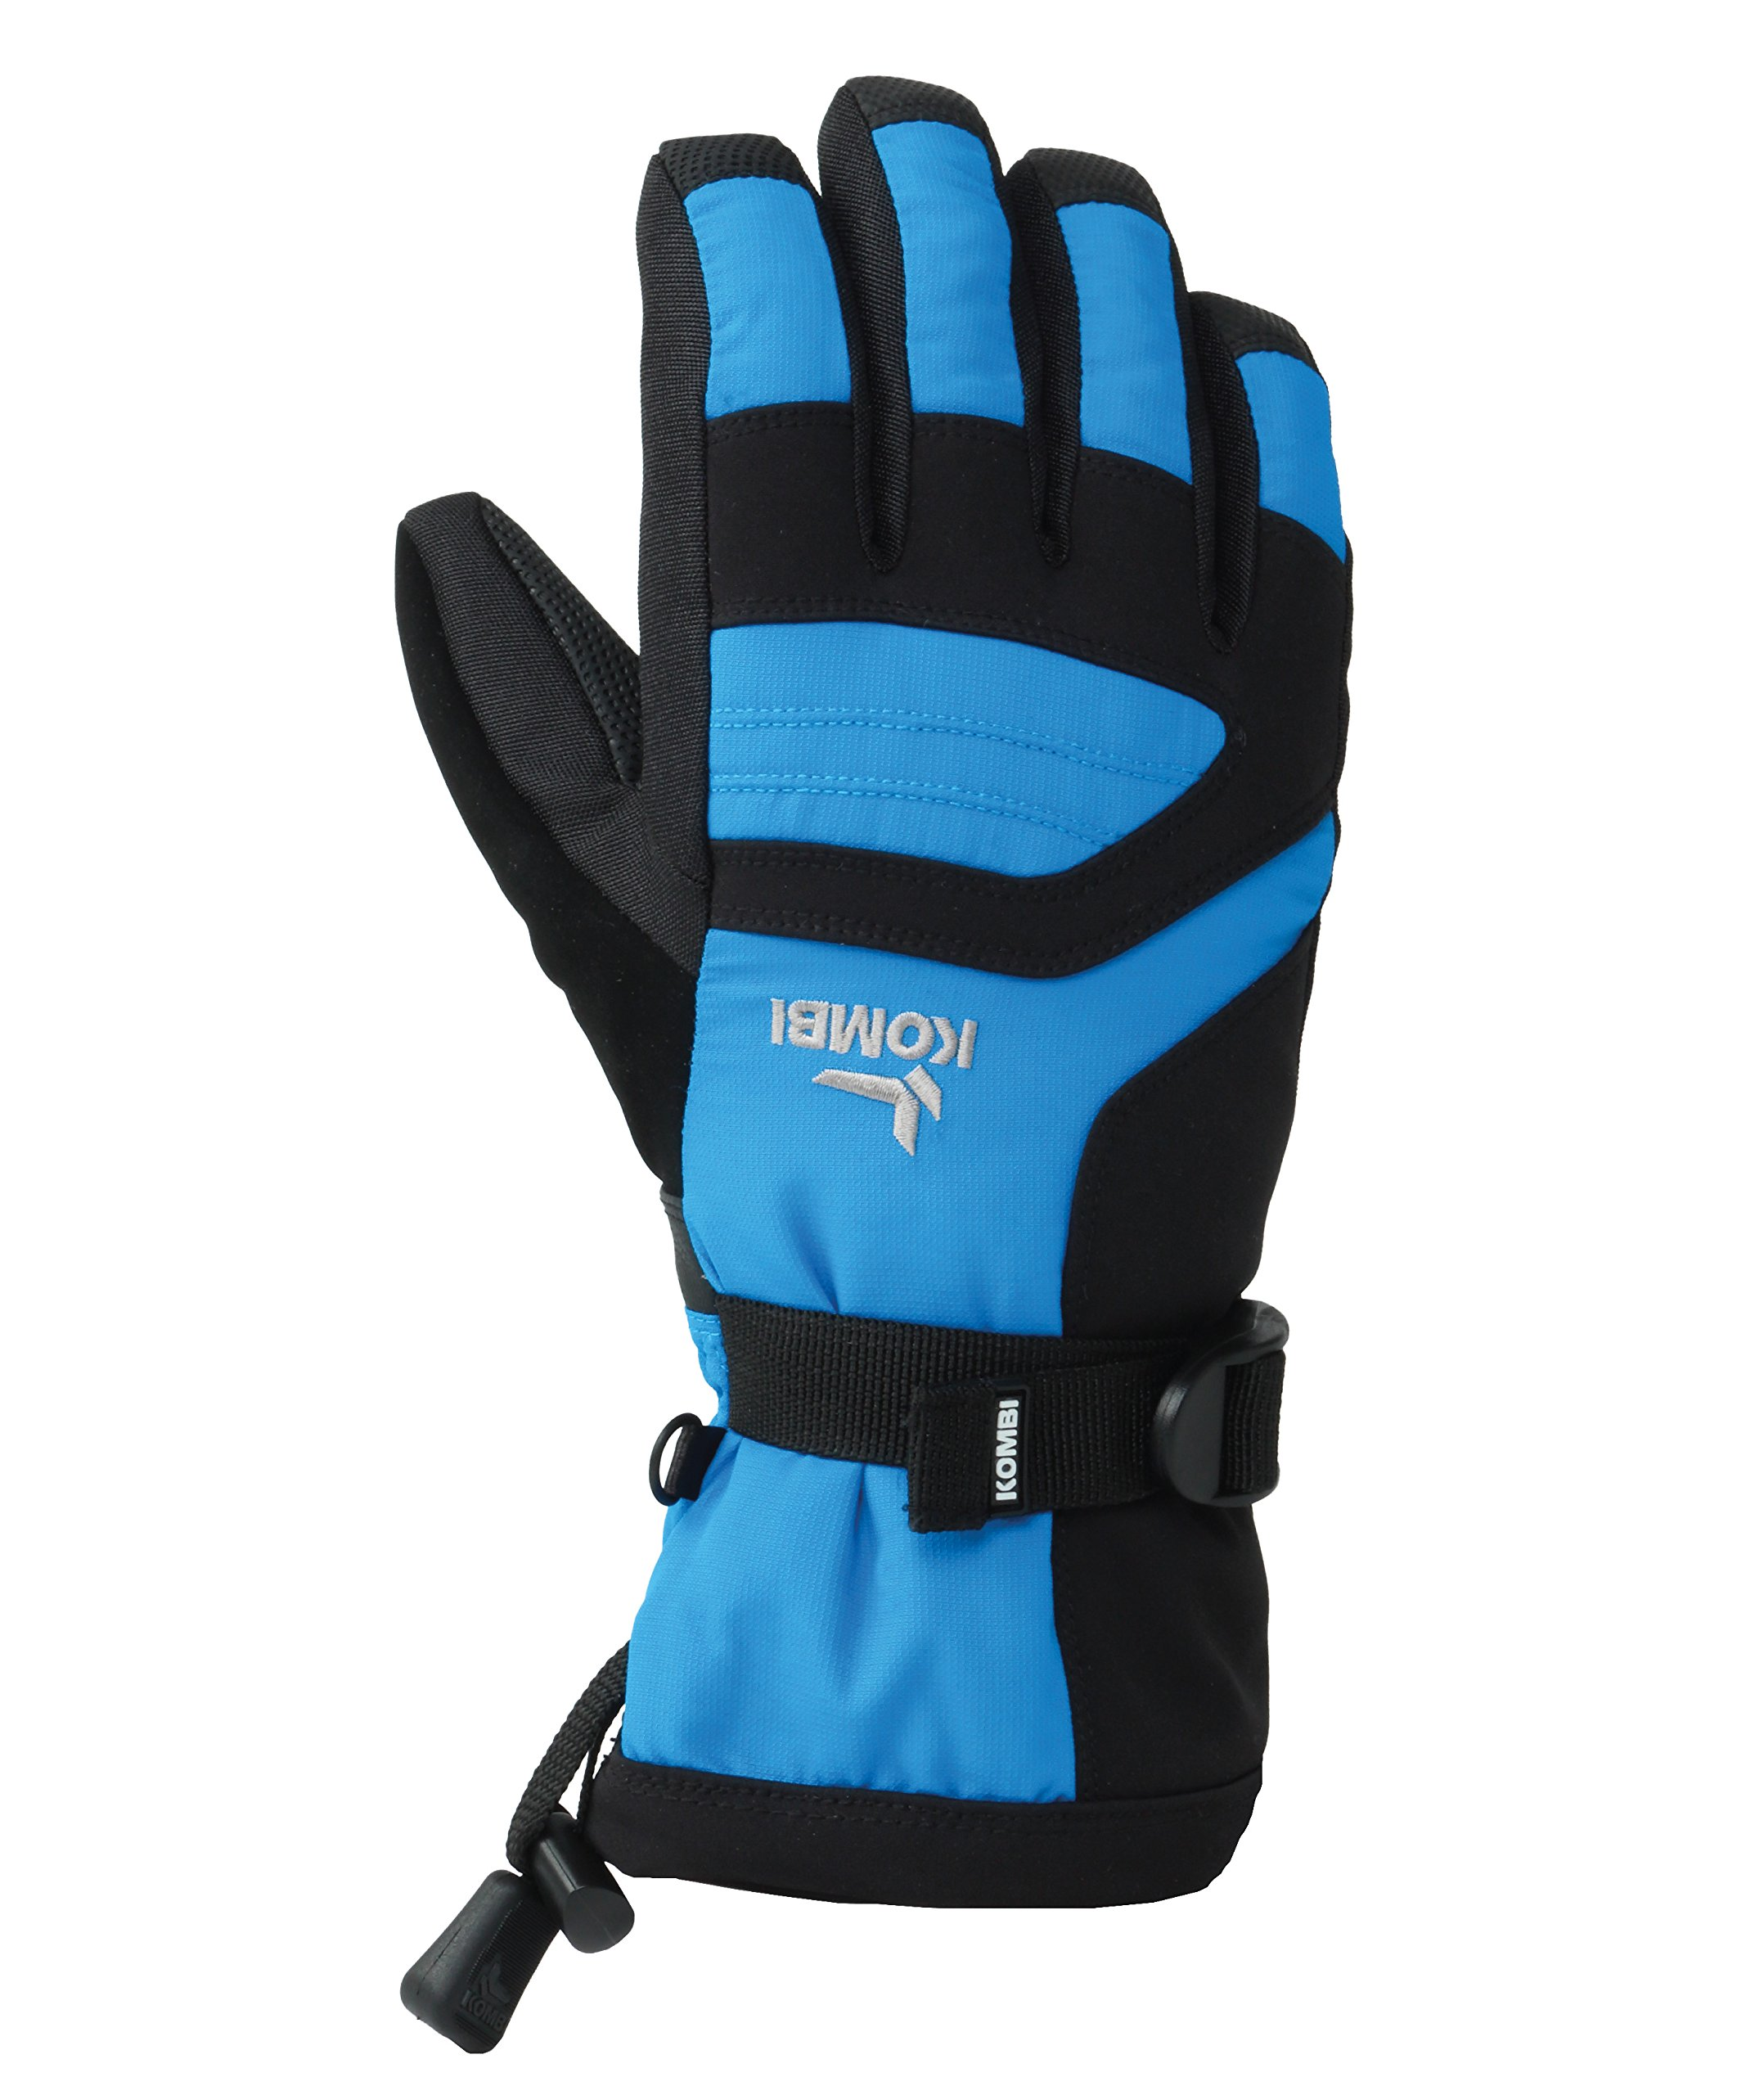 Kombi Kids & Baby Storm Cuff III Jr Cold Weather Gloves, Small, Directoire Blue Black